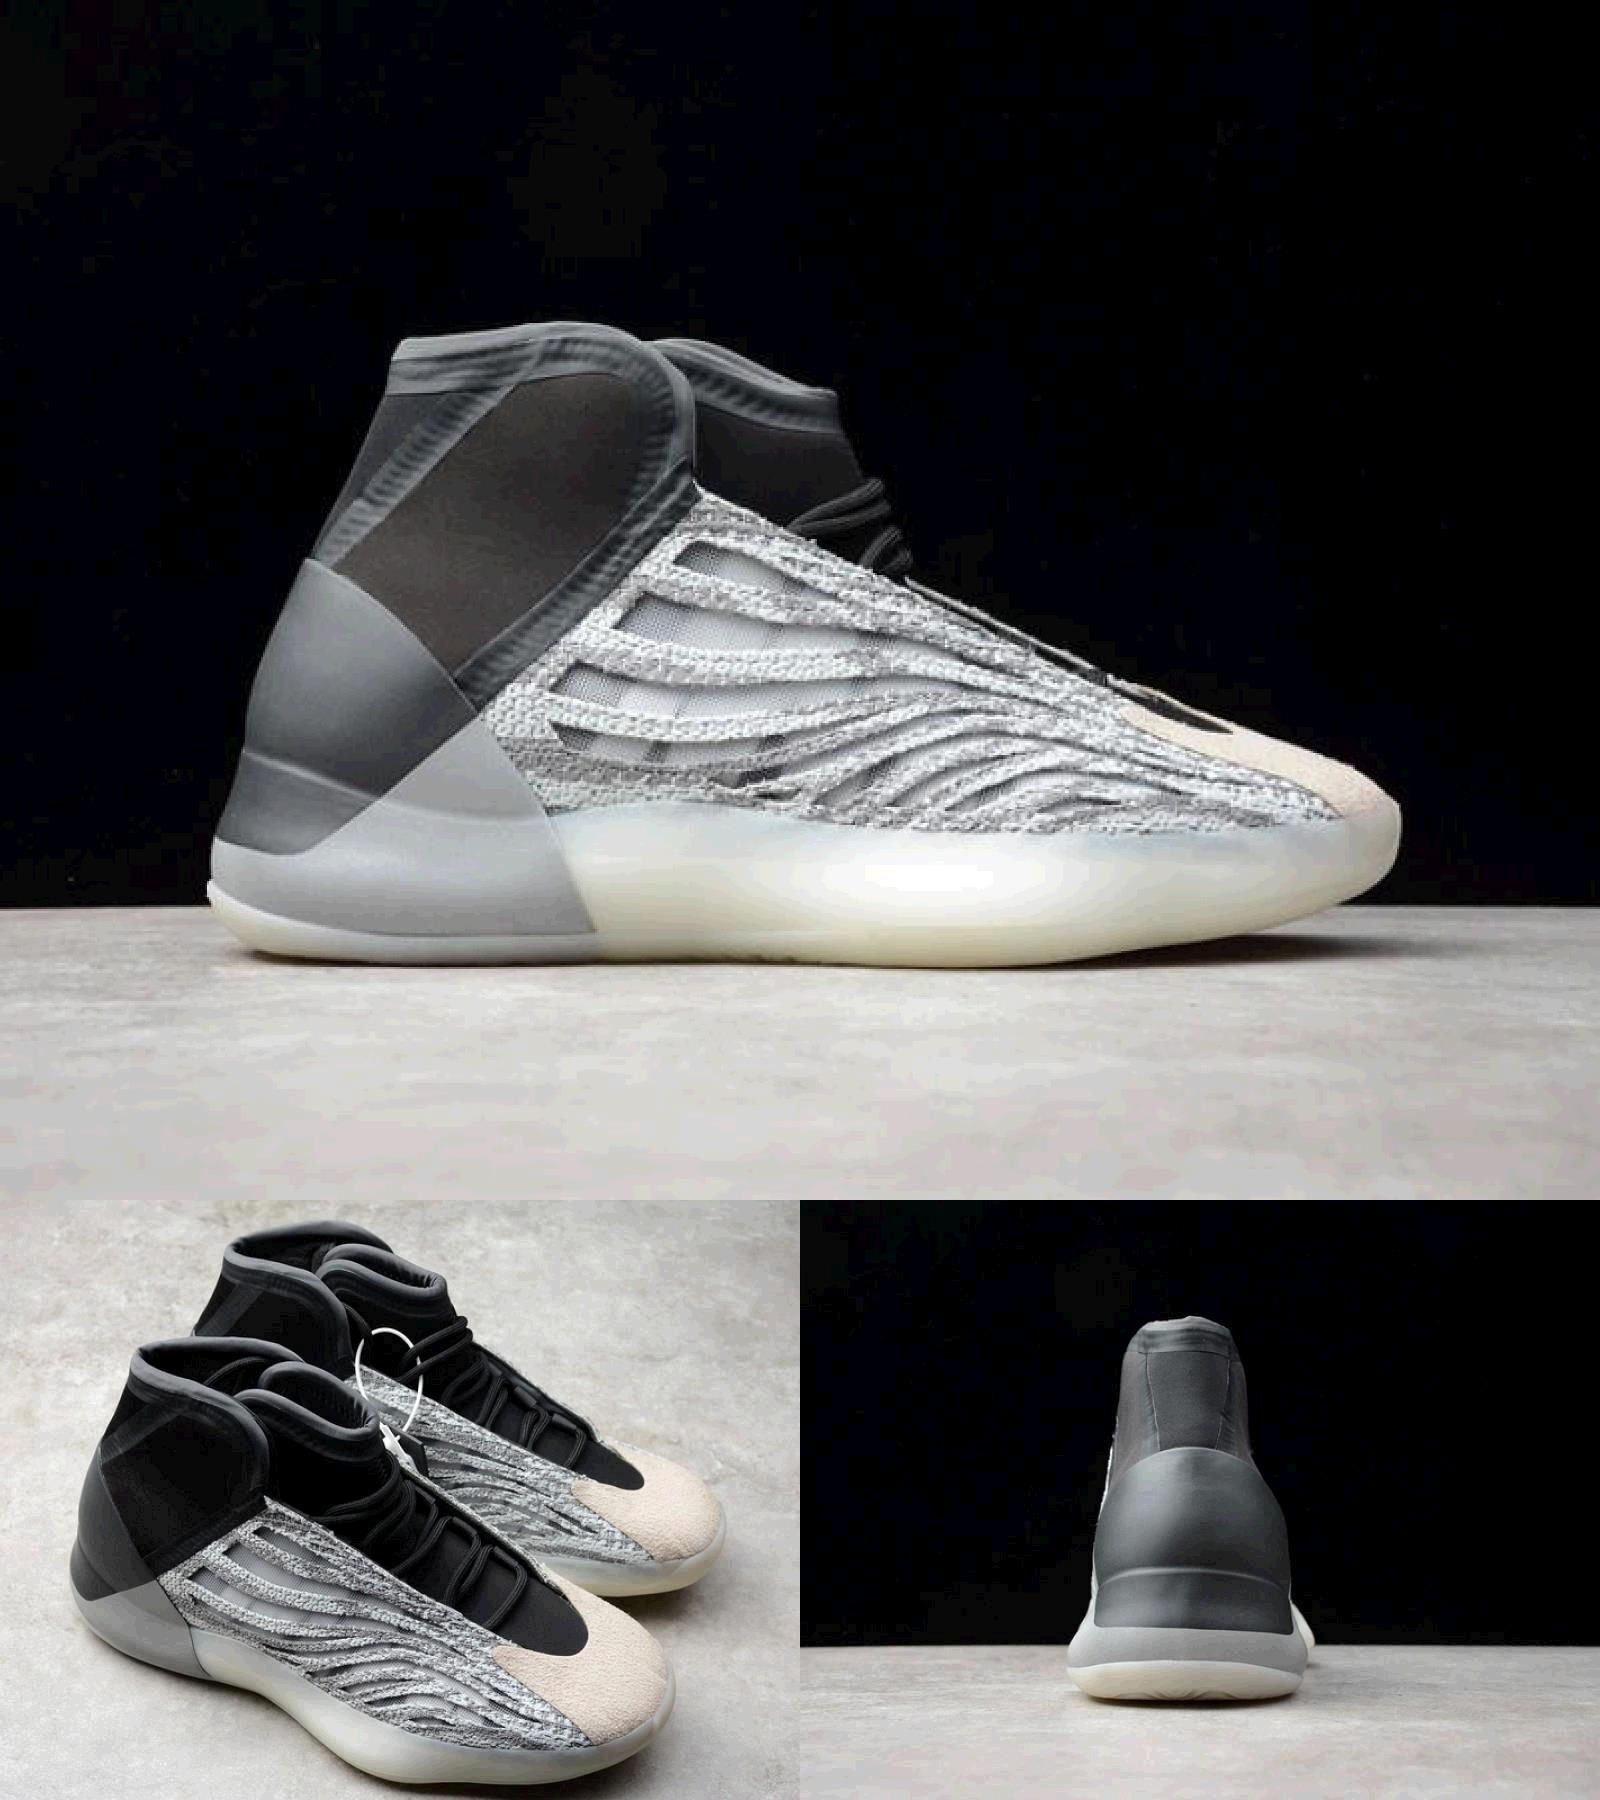 Yeezy Basketball Quantum Eg1535 In 2020 Yeezy Nike Shoes Jordans Sneakers